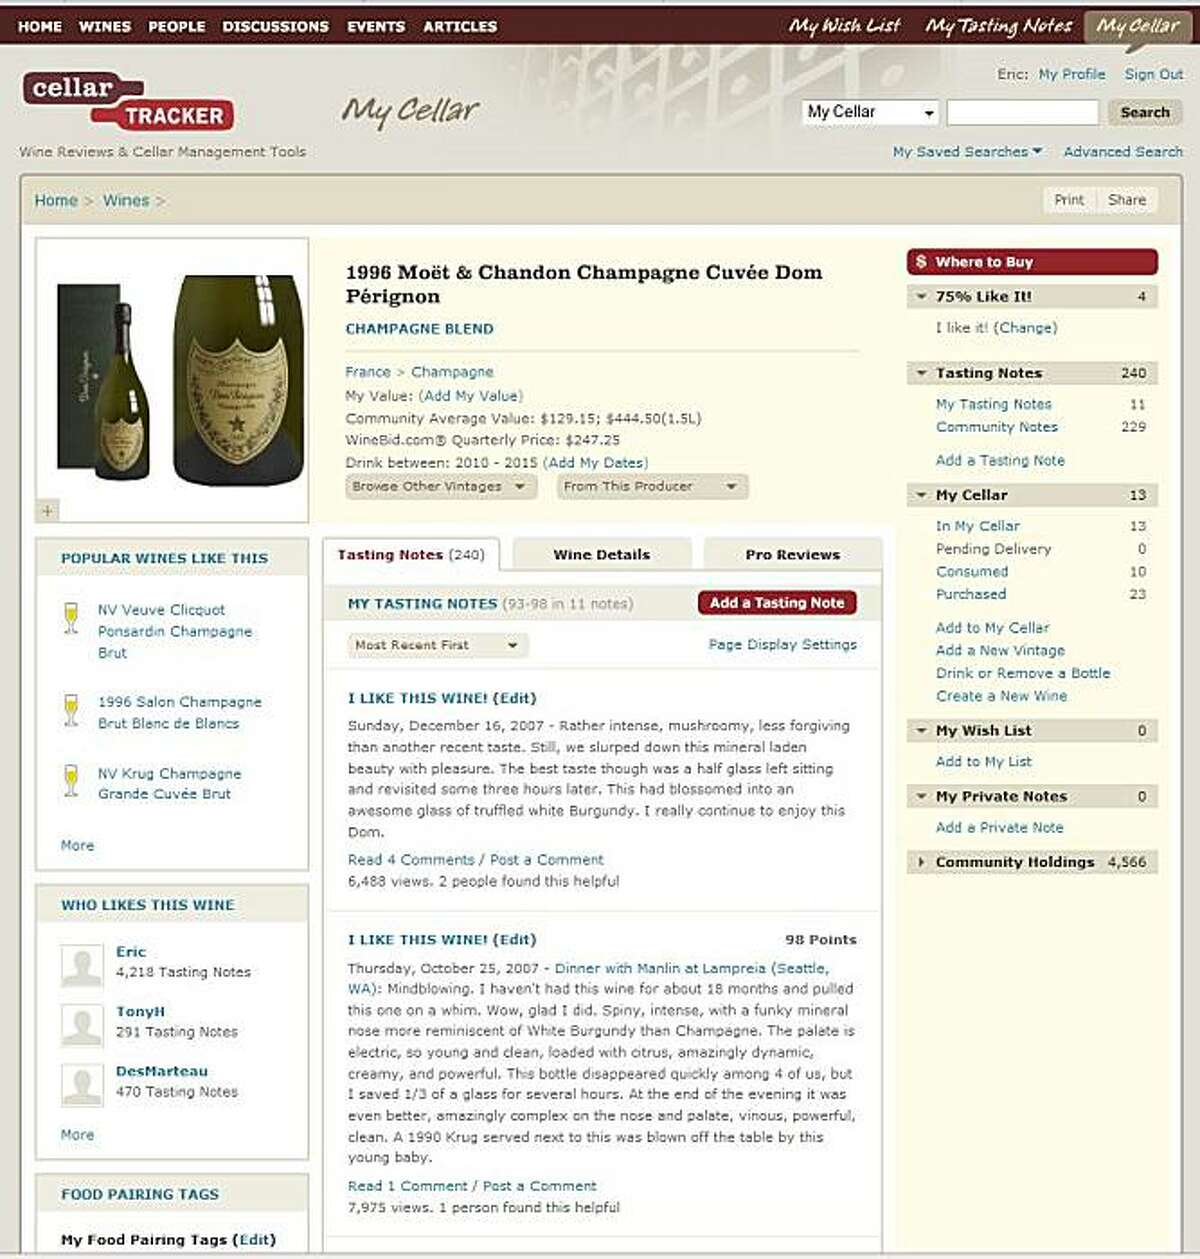 A screen shot of a review page for the 1996 Dom Perignon Champagne from the forthcoming release of the new Cellartracker.com site.